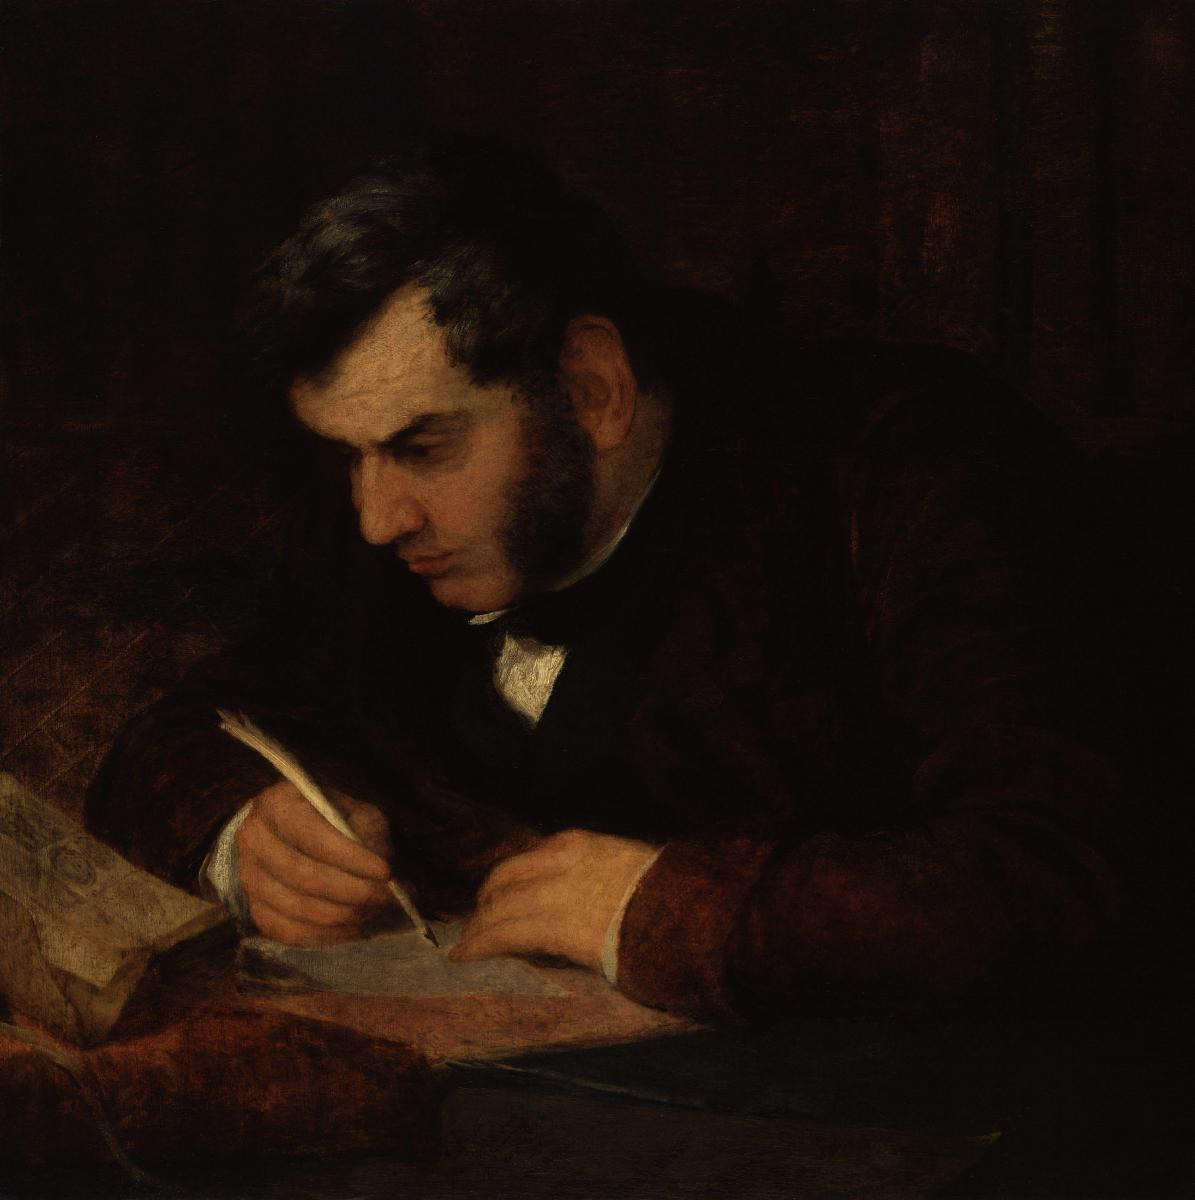 Sir Anthony Panizzi by George Frederic Watts